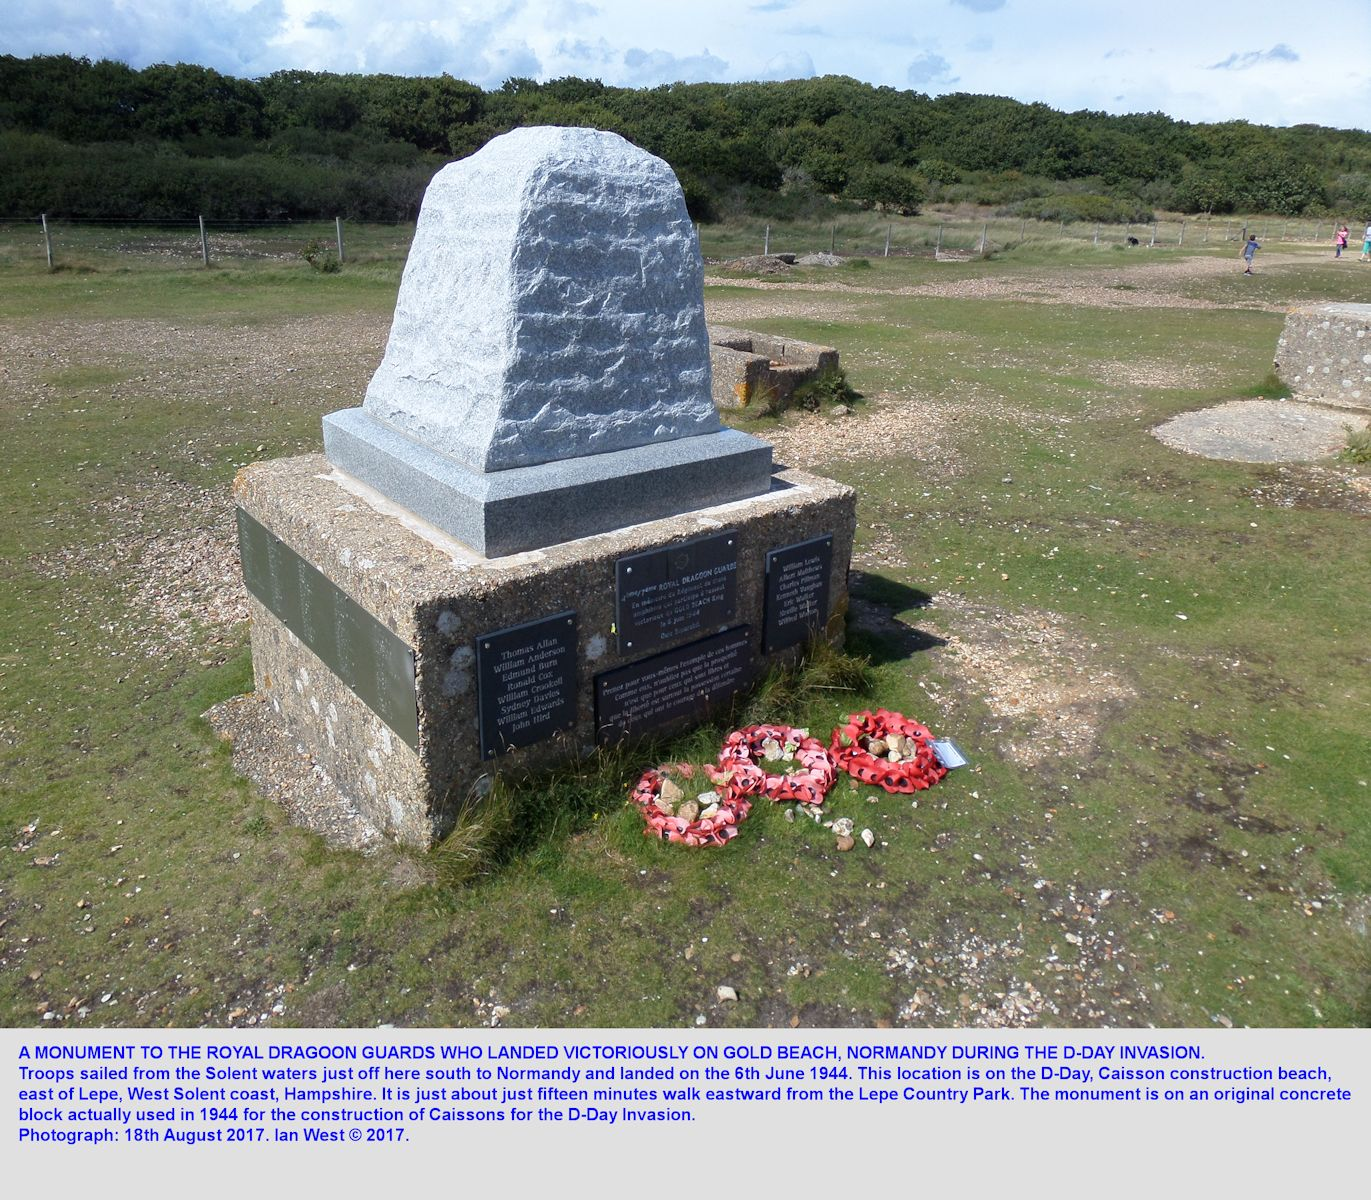 The D-Day Monument on the caisson-construction beach, northeast of Stansore Point, near Lepe, Hampshire